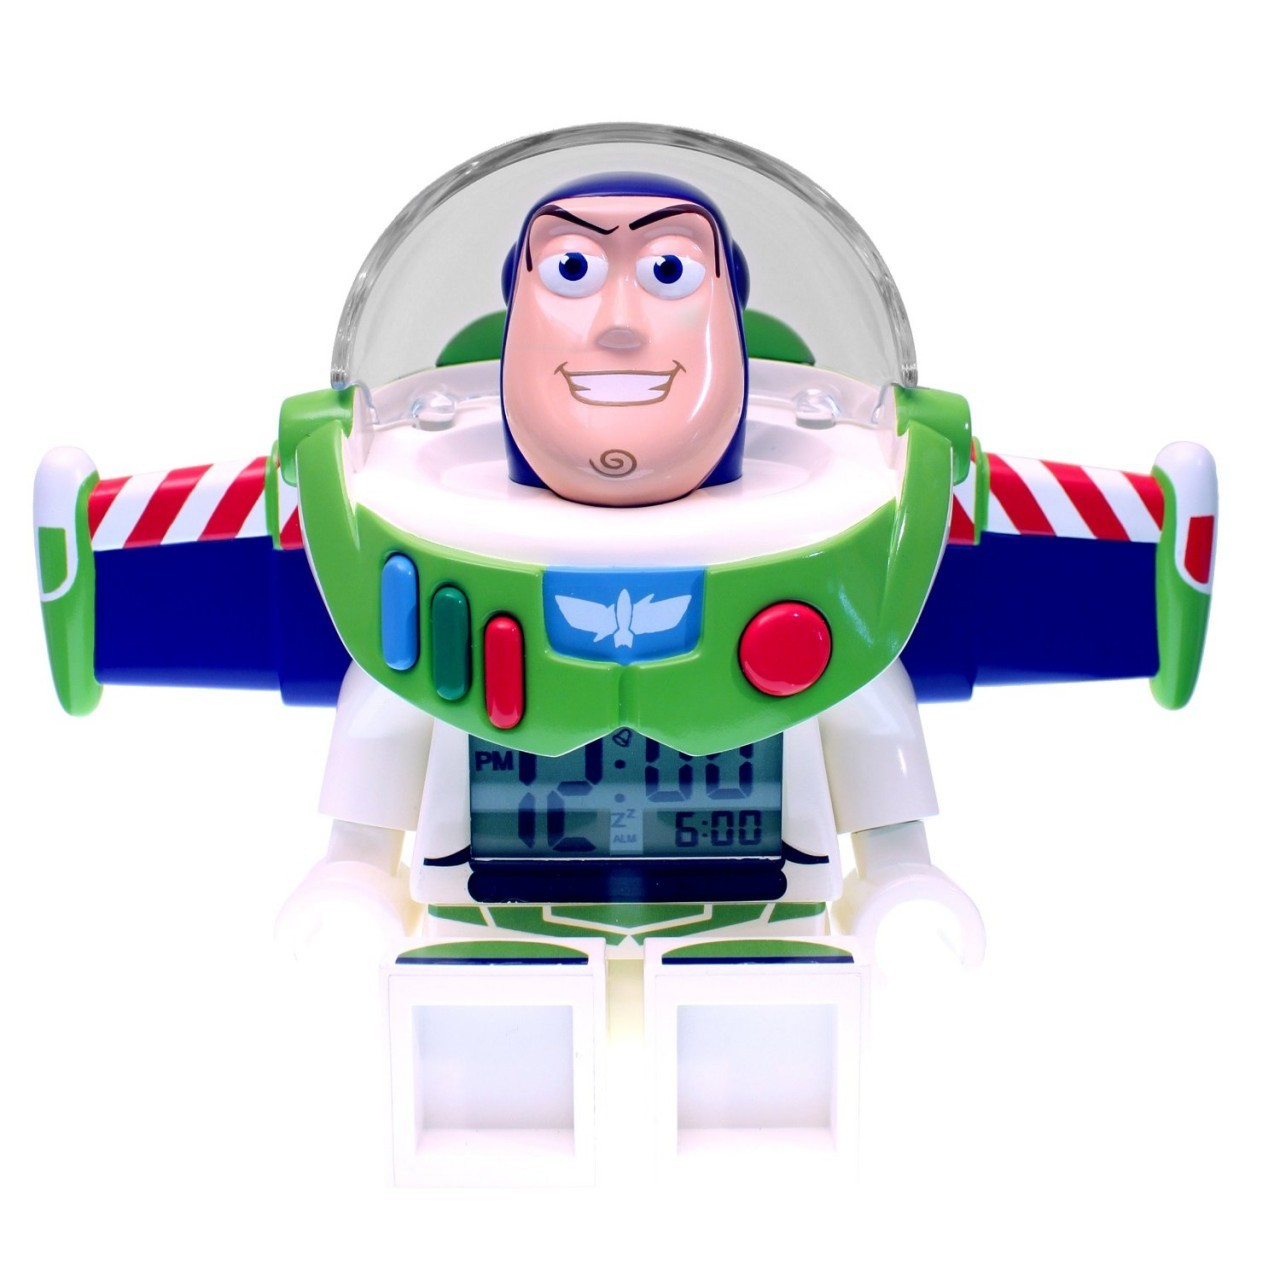 Buzz Lightyear kid toy